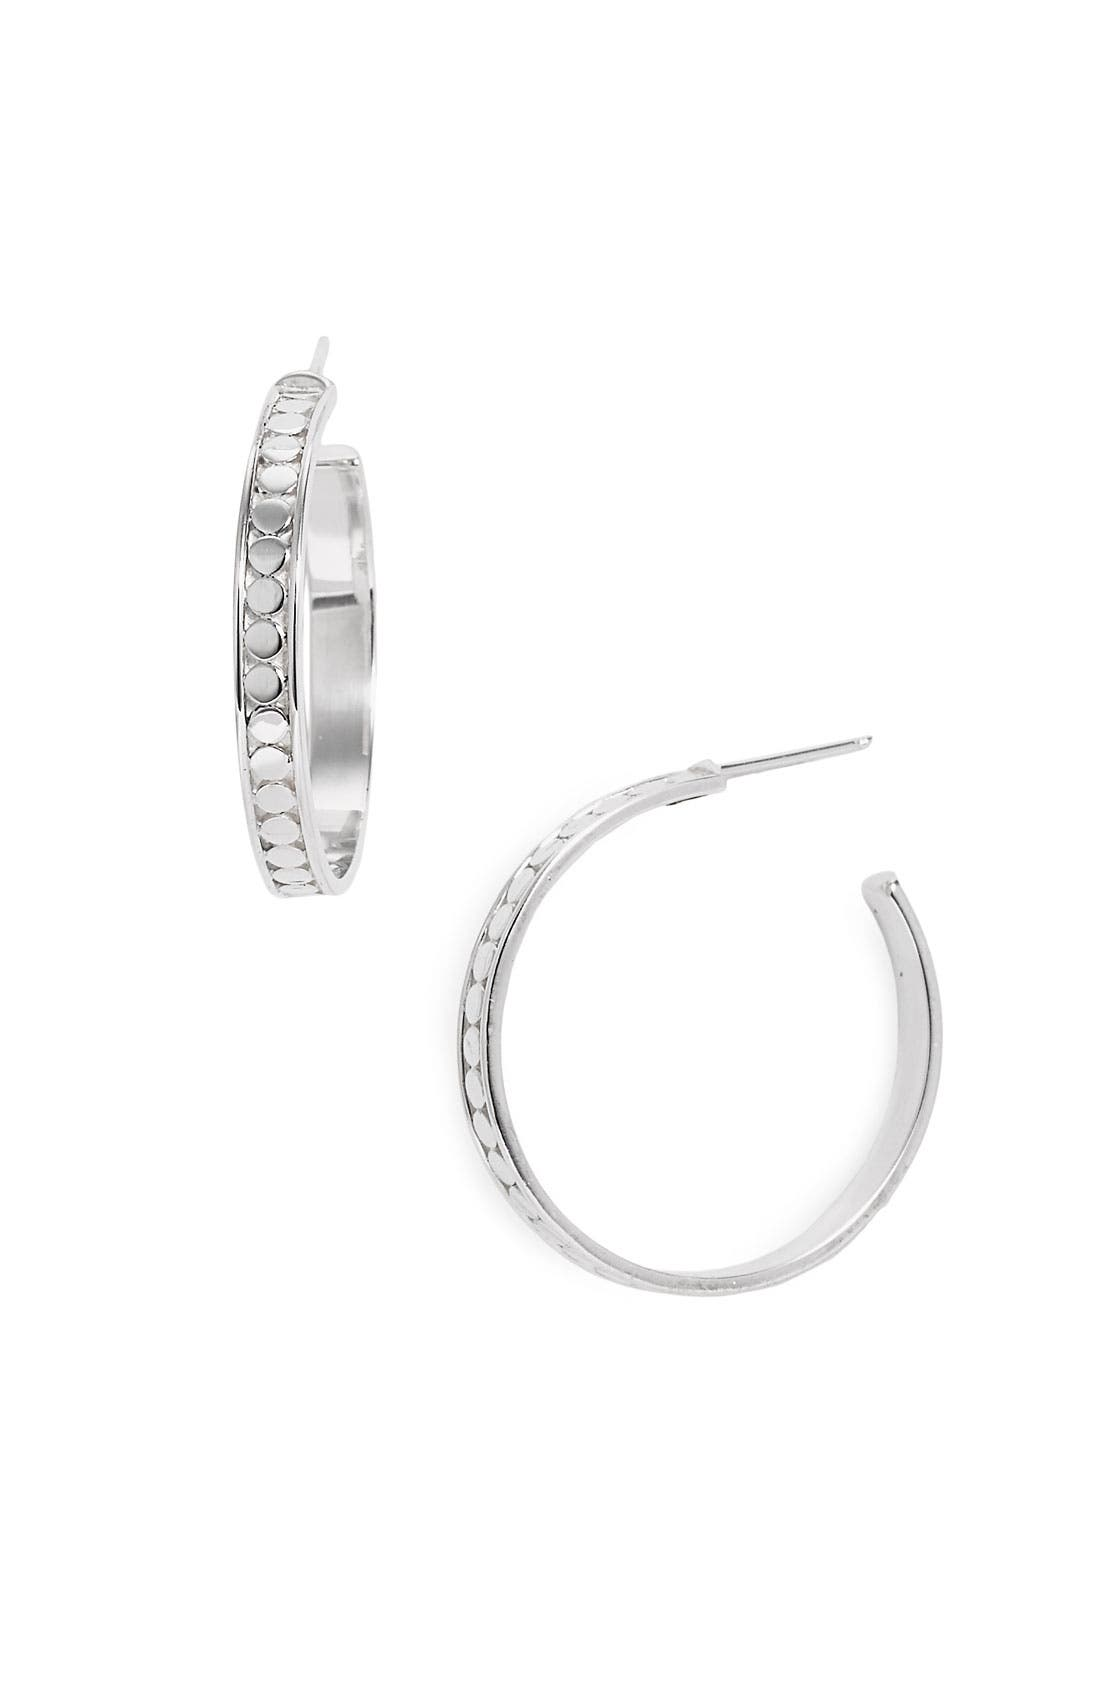 Main Image - Anna Beck 'Bali' Hoop Earrings